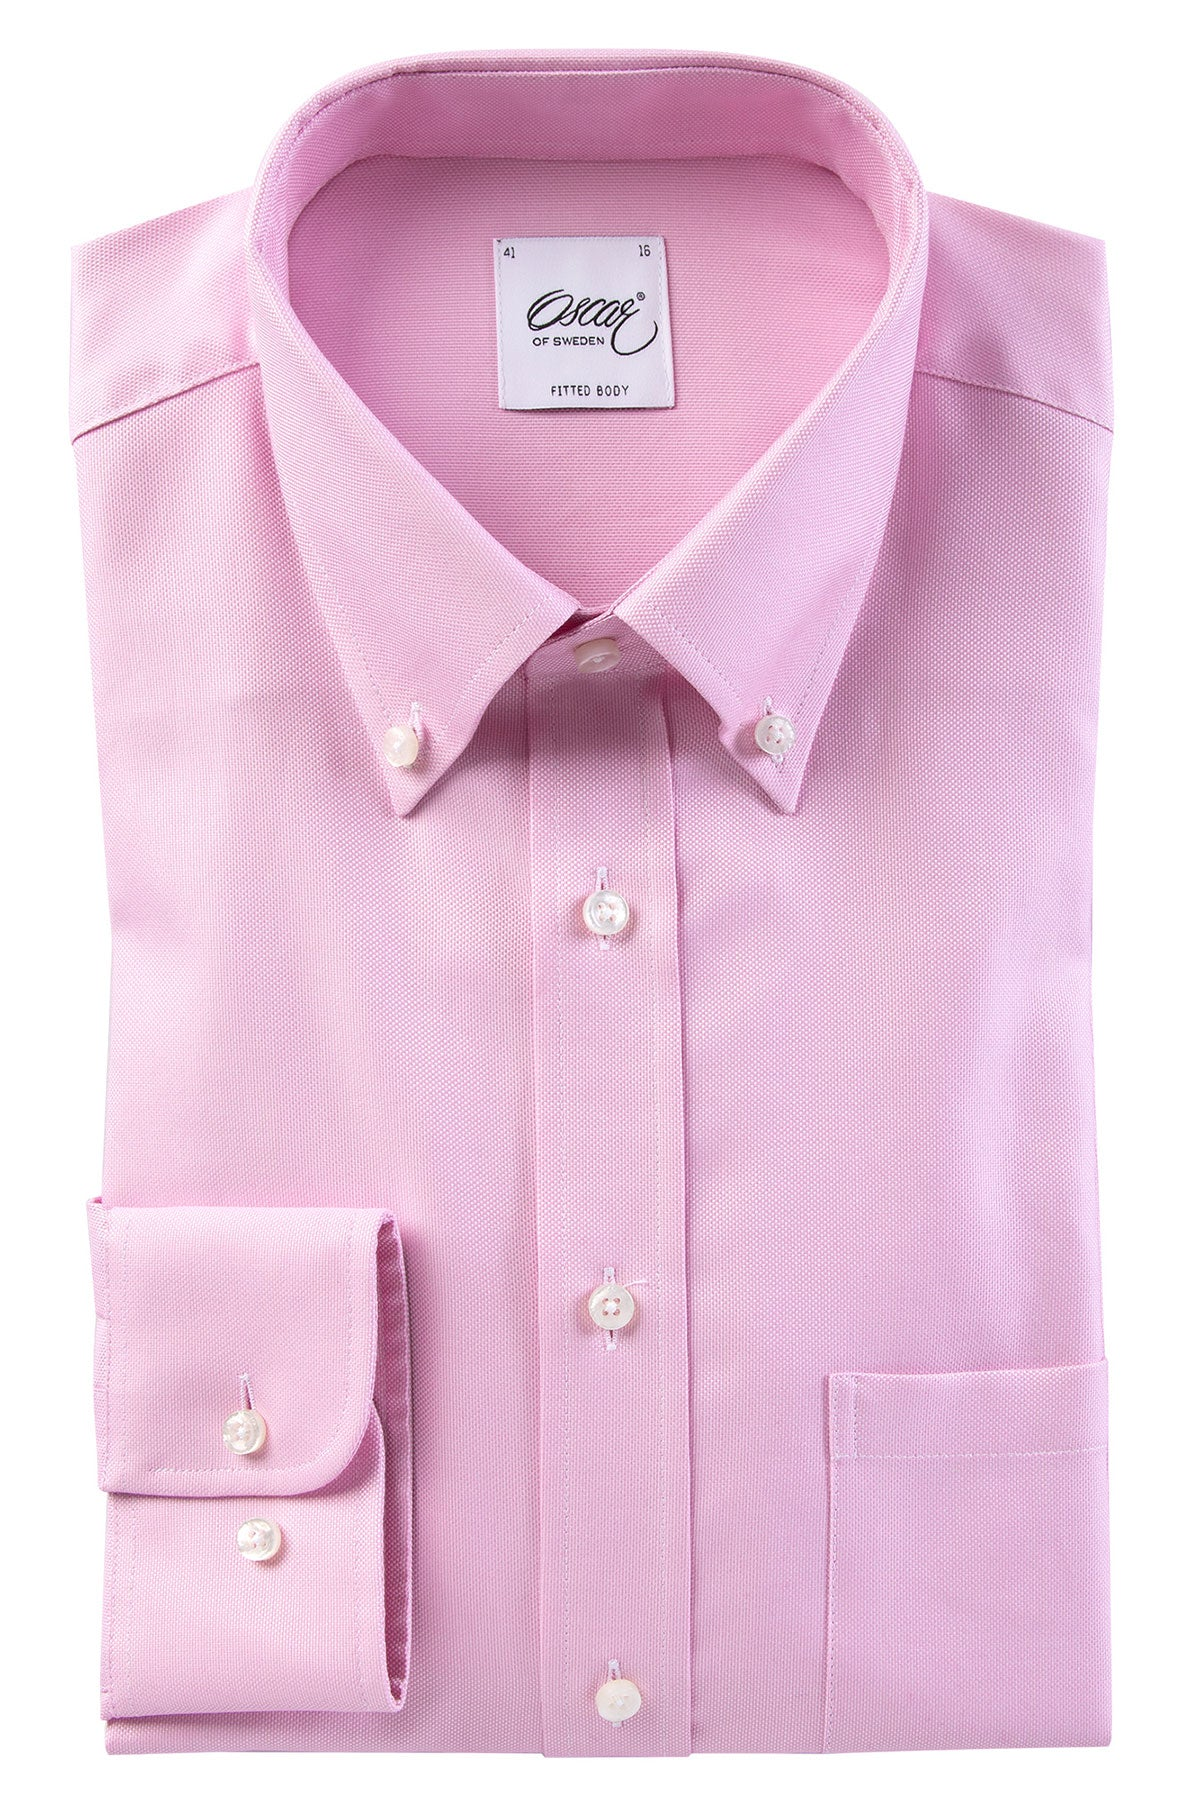 Washed pink button-down slim fit shirt